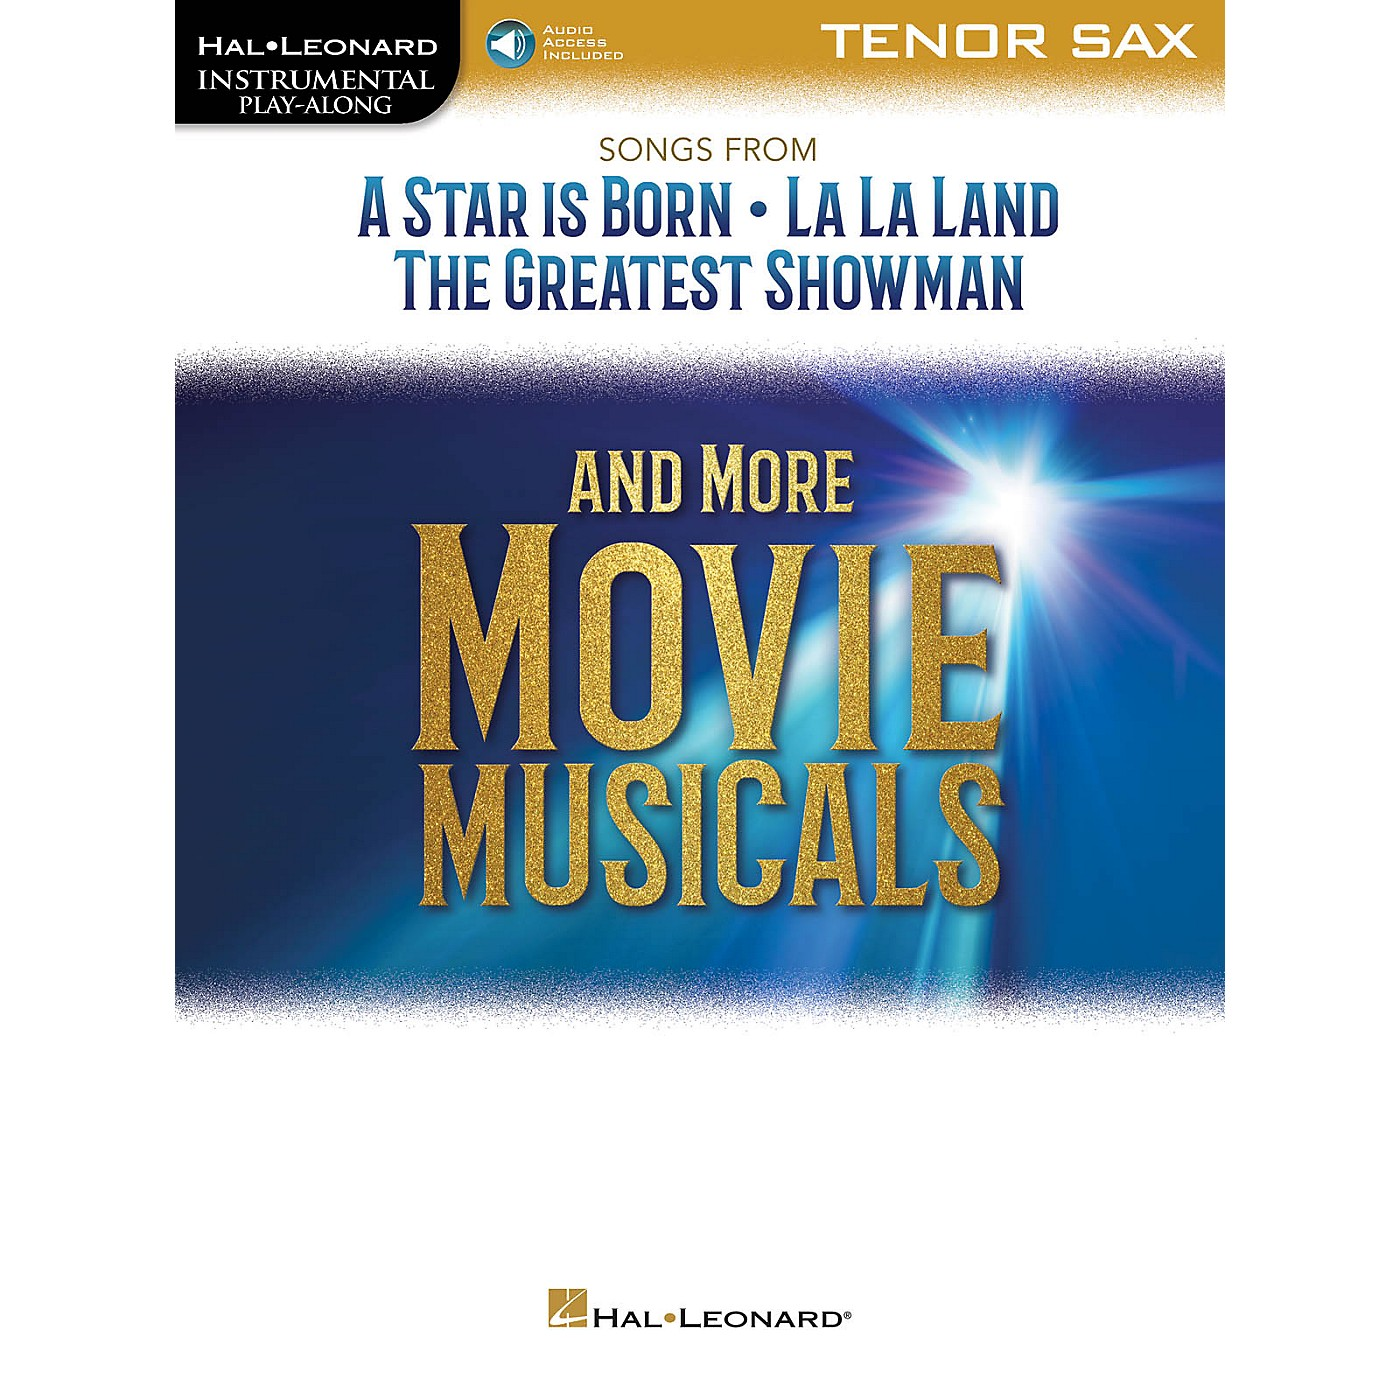 Hal Leonard Songs from A Star Is Born, La La Land and The Greatest Showman Instrumental Play-Along for Tenor Sax Book/Audio Online thumbnail